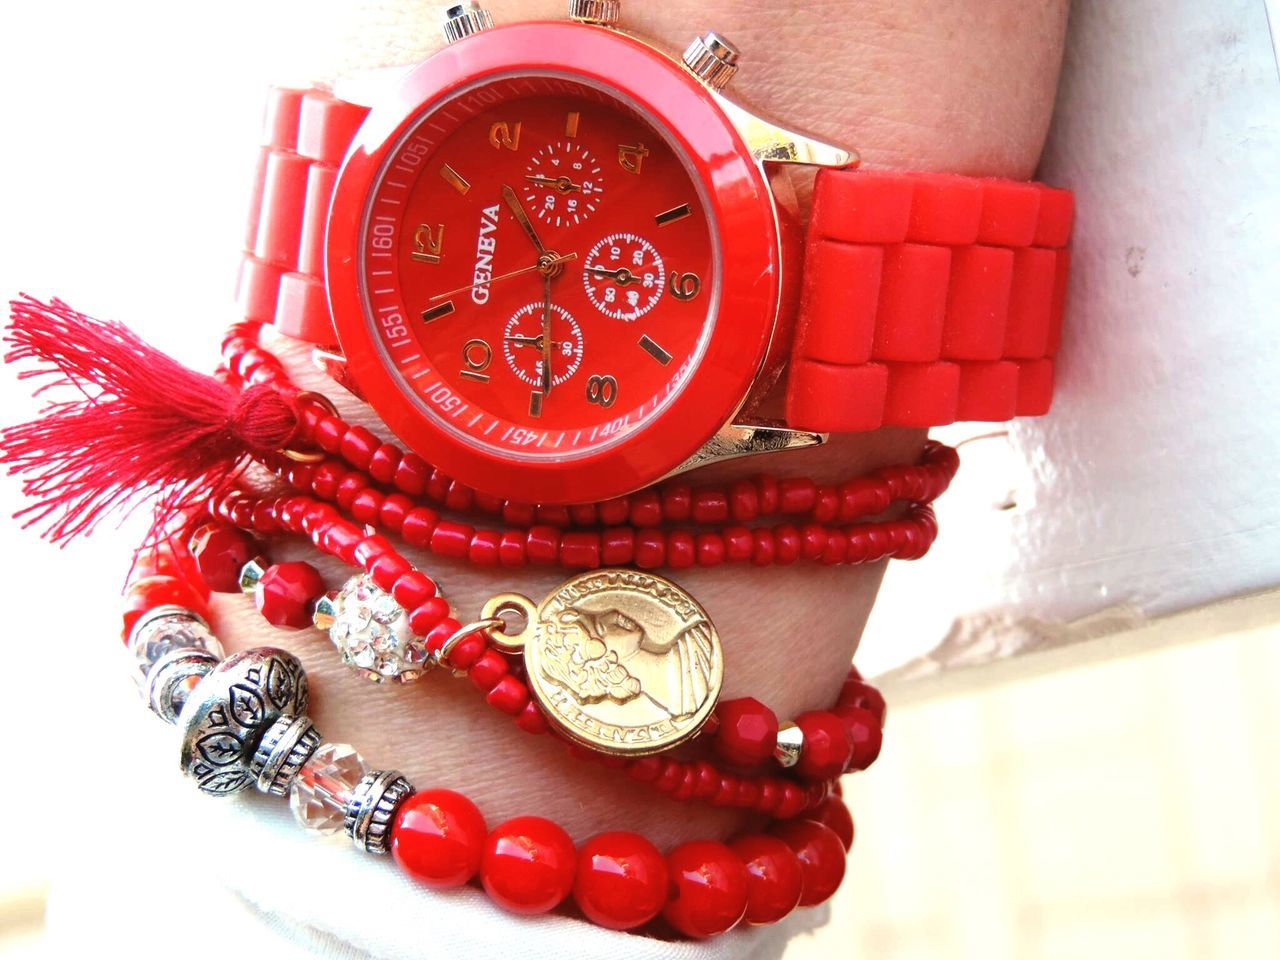 Showcase April Fashion Fashion Photography Fashion&love&beauty EyeEm Best Shots Red Red Jewellery Red Watch Handmade Jewellery